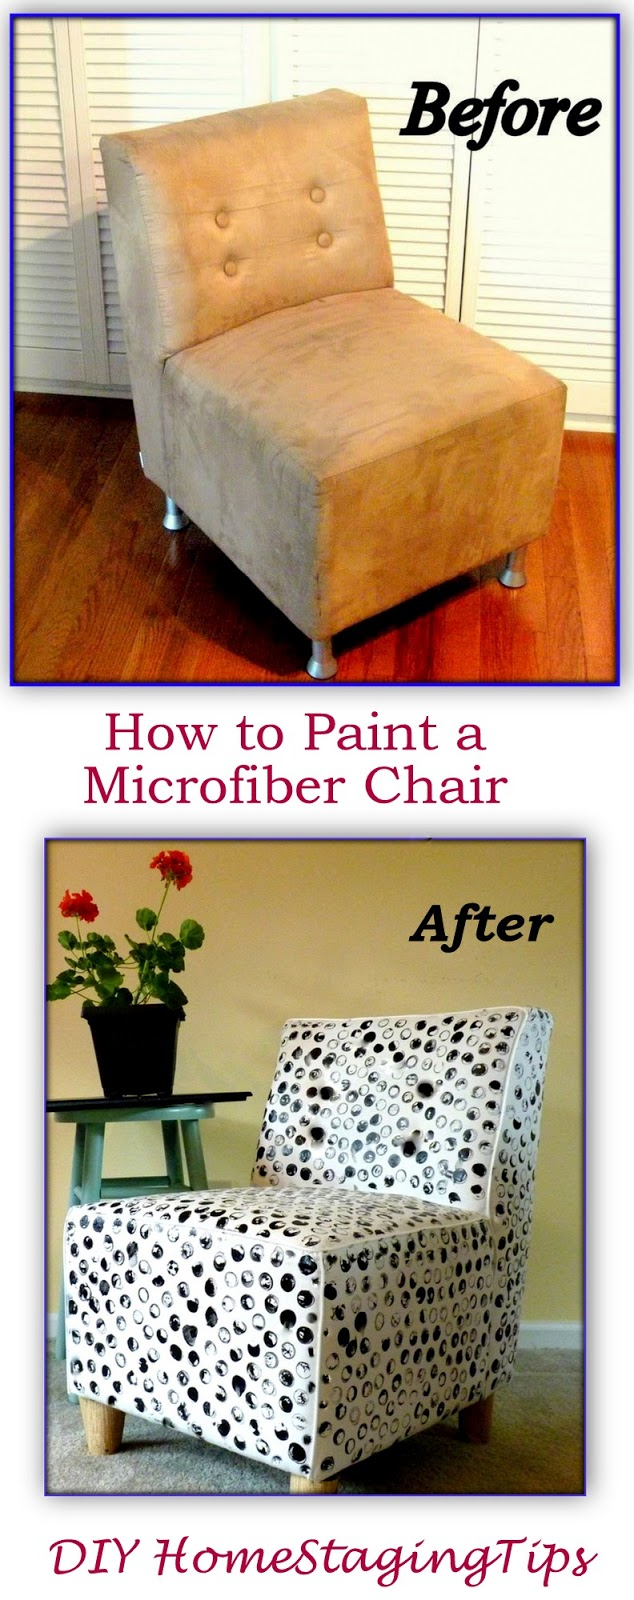 Diy home staging tips how to beautify an ugly microfiber for Diy home staging ideas